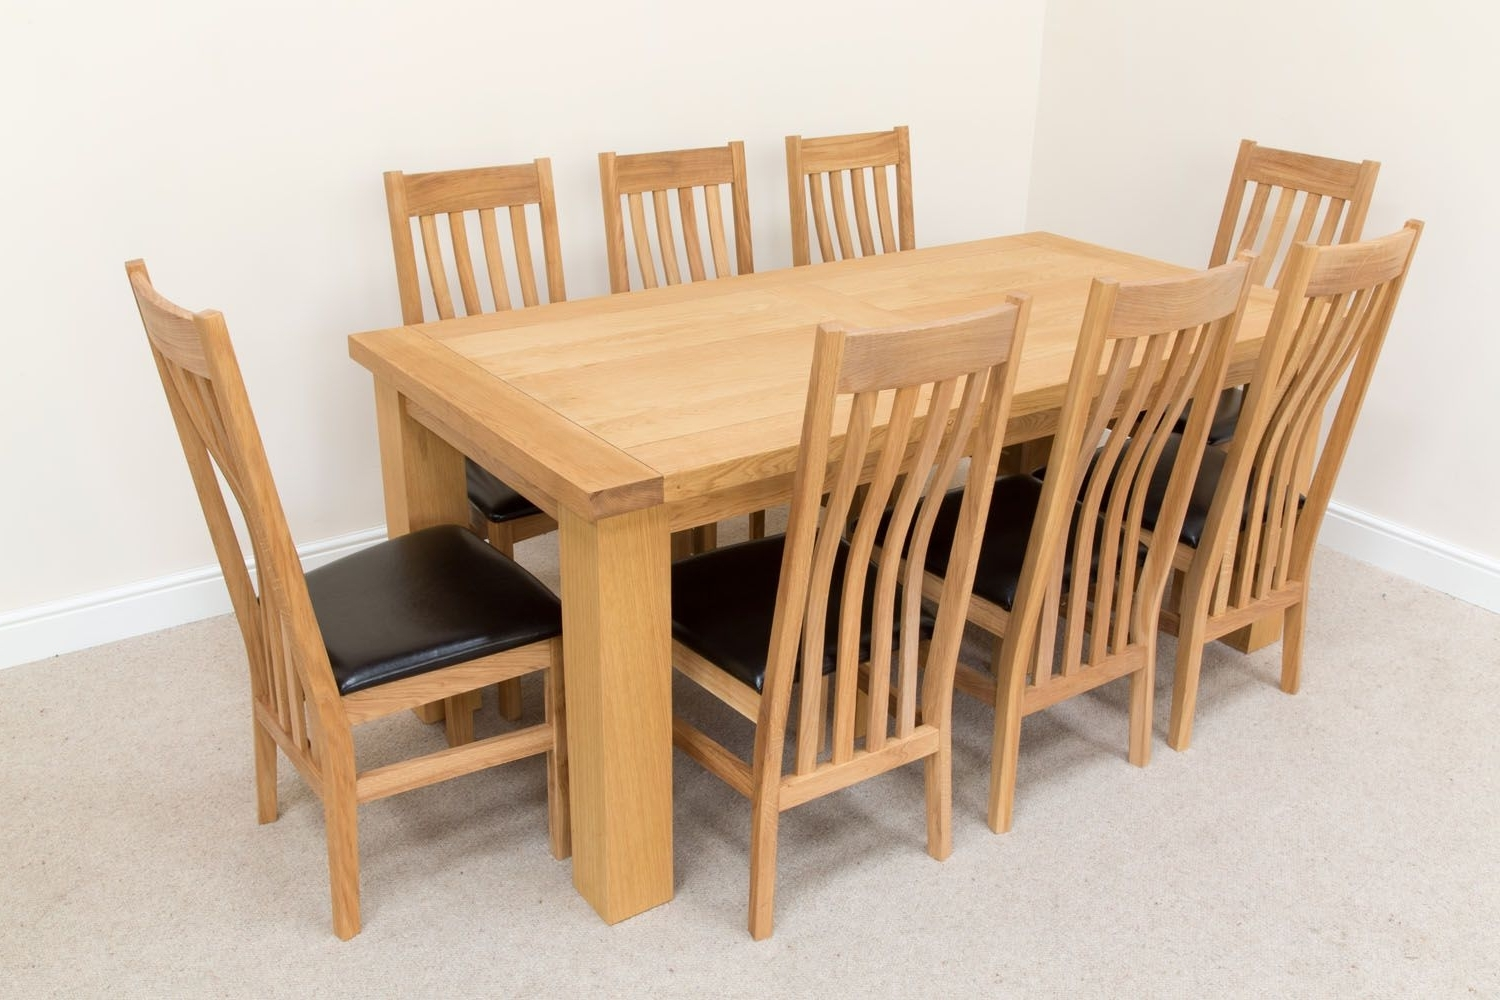 Solid Oak Dining Tables And 8 Chairs Within Best And Newest Riga Oak Table 8 Seater Winchester Brown Chair Dining Set (View 23 of 25)